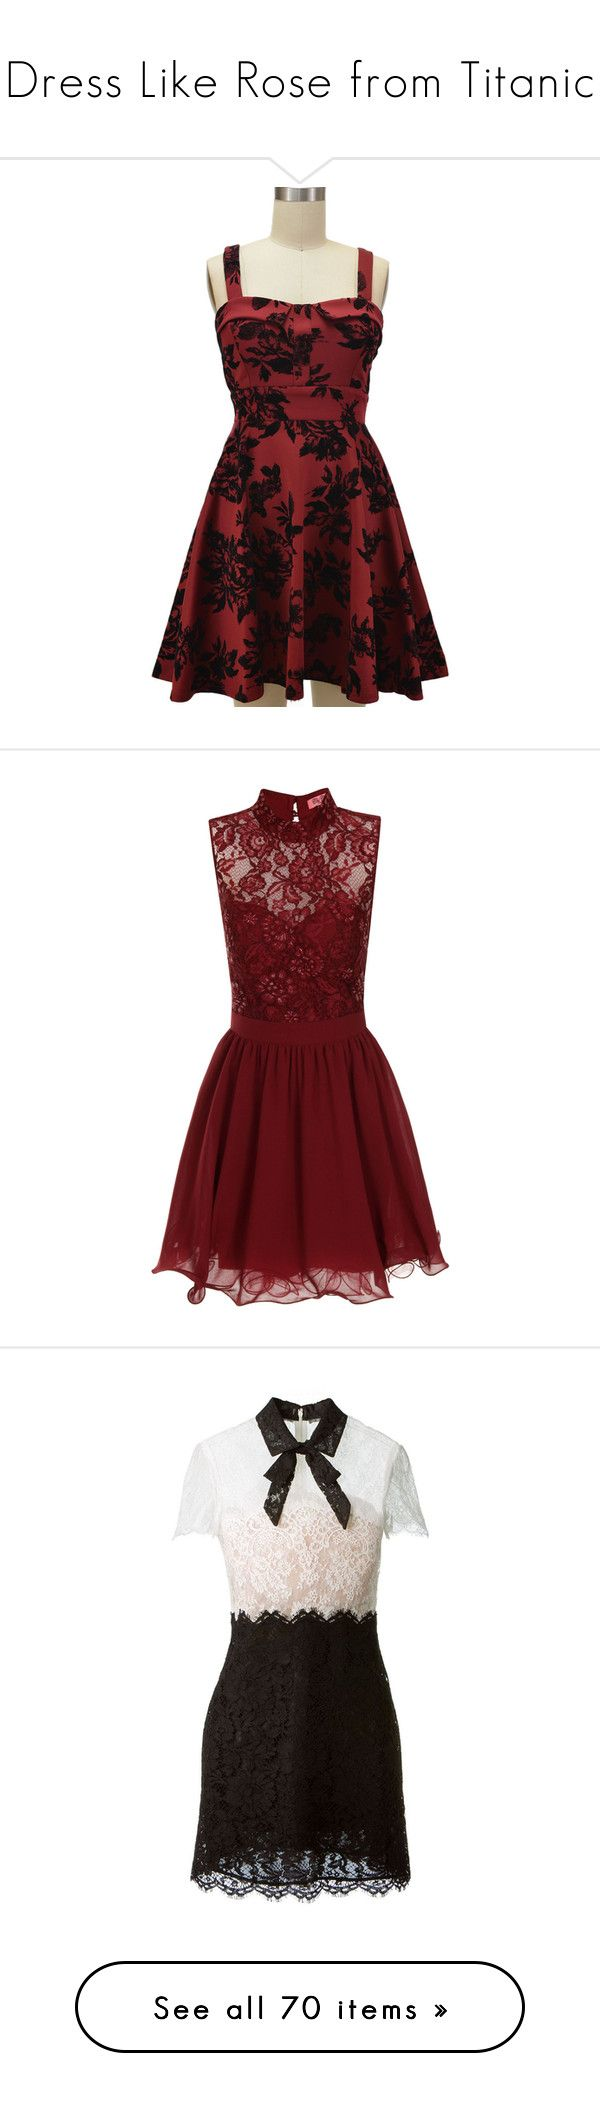 """""""Dress Like Rose from Titanic"""" by sophialovescoffee ❤ liked on Polyvore featuring dresses, red, vestidos, garnet dress, bow dress, sundress dresses, bow tie dress, sweetheart dress, short dresses and sale"""